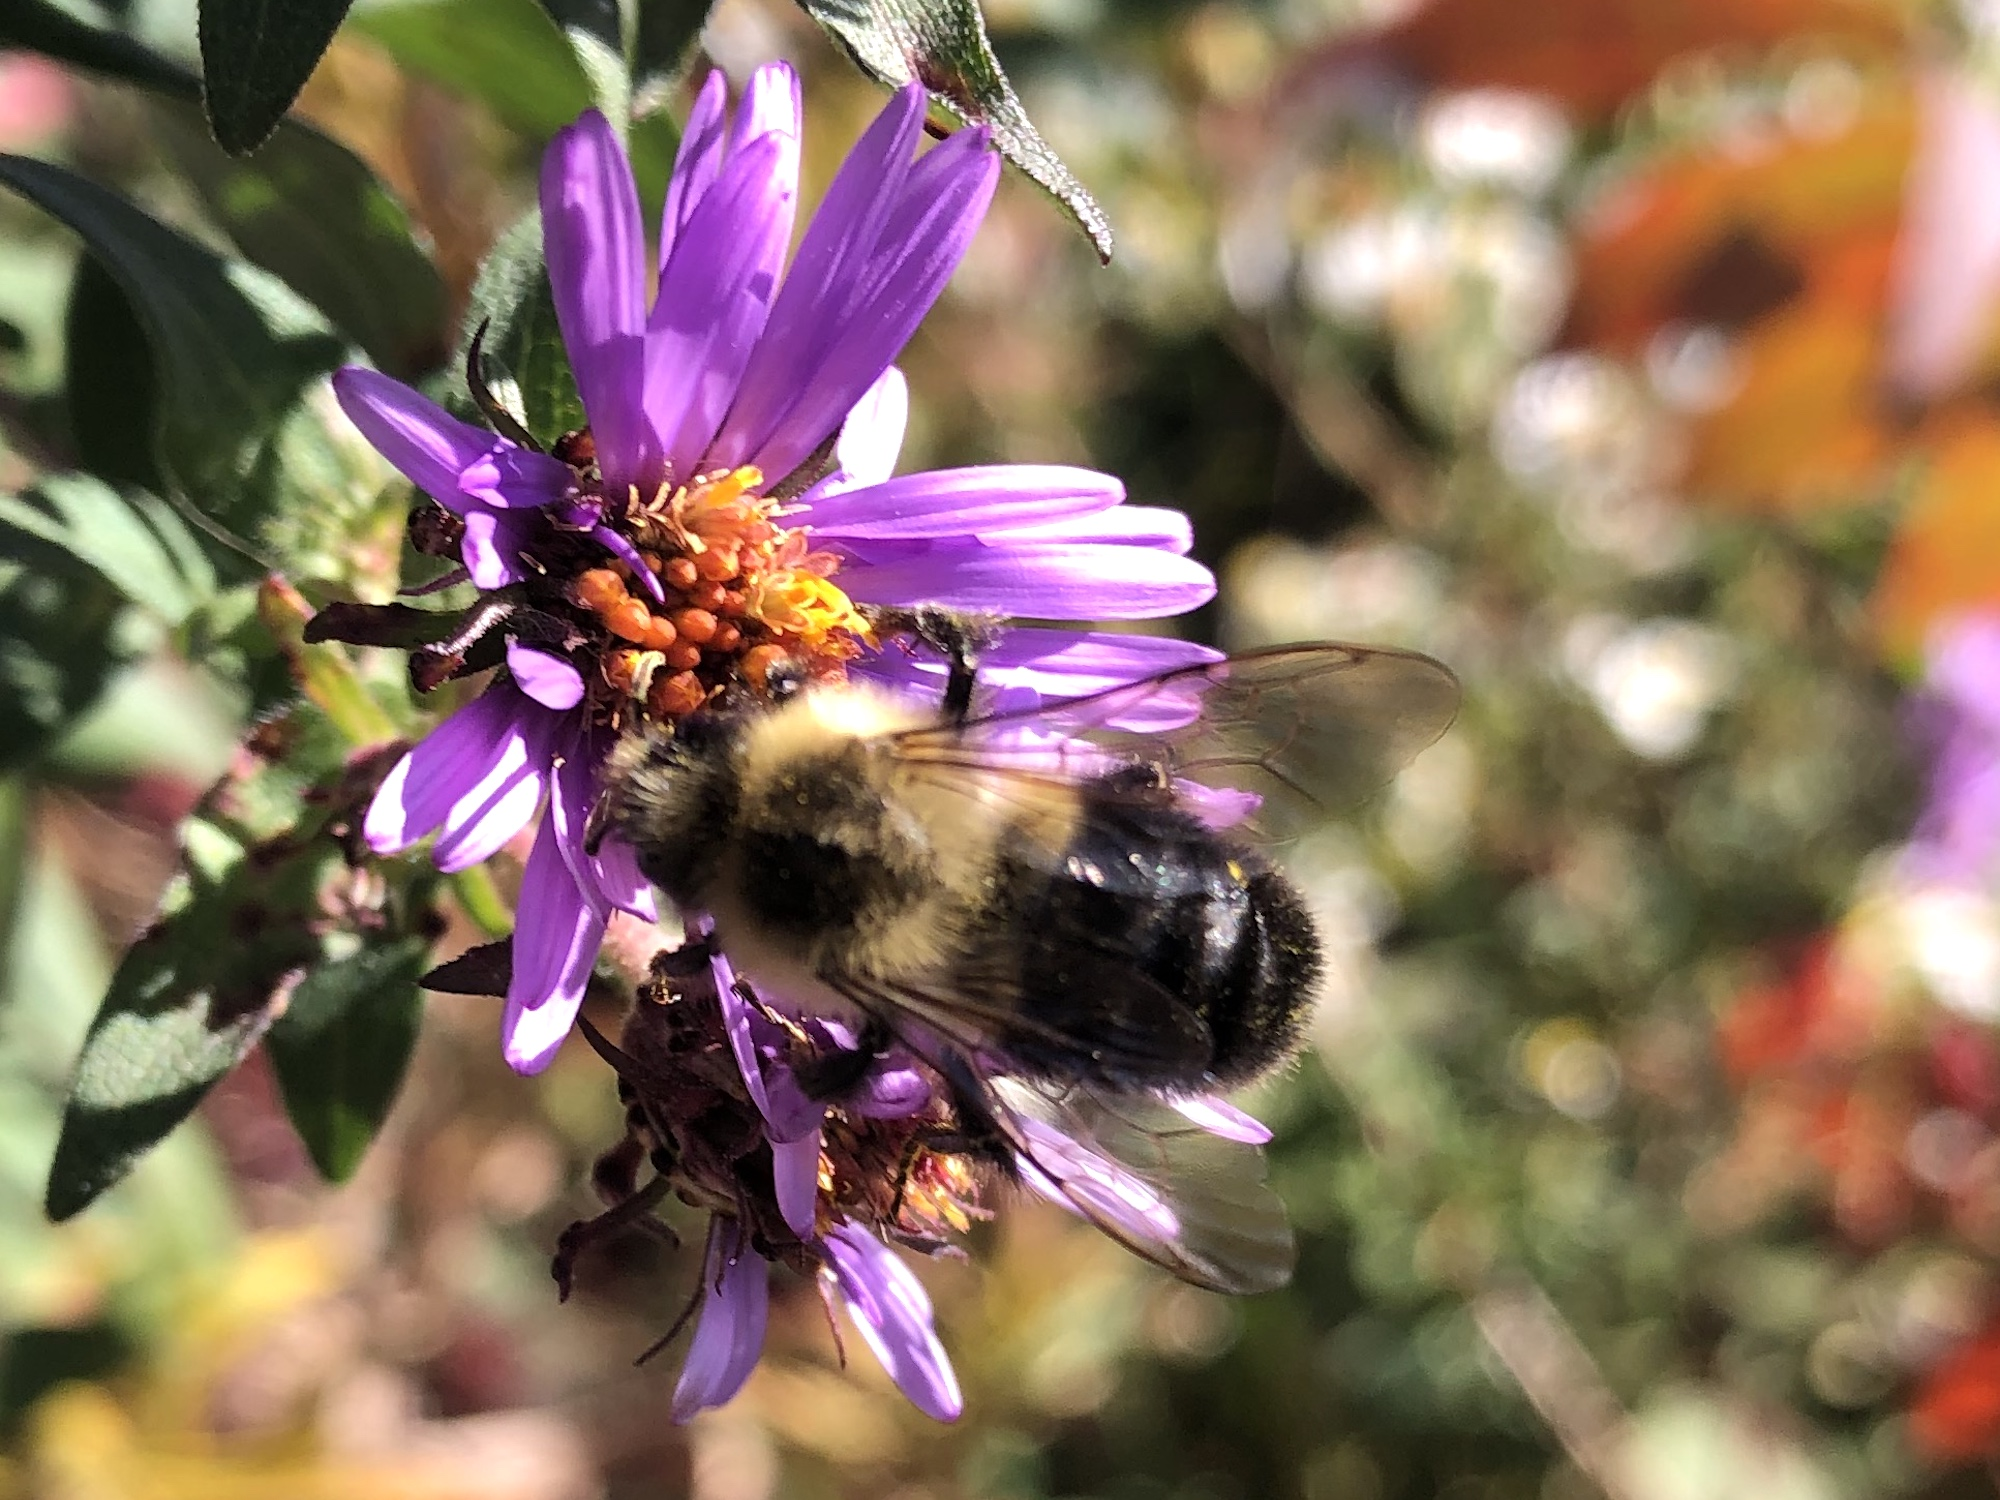 Bumblebee on aster on October 7, 2020.